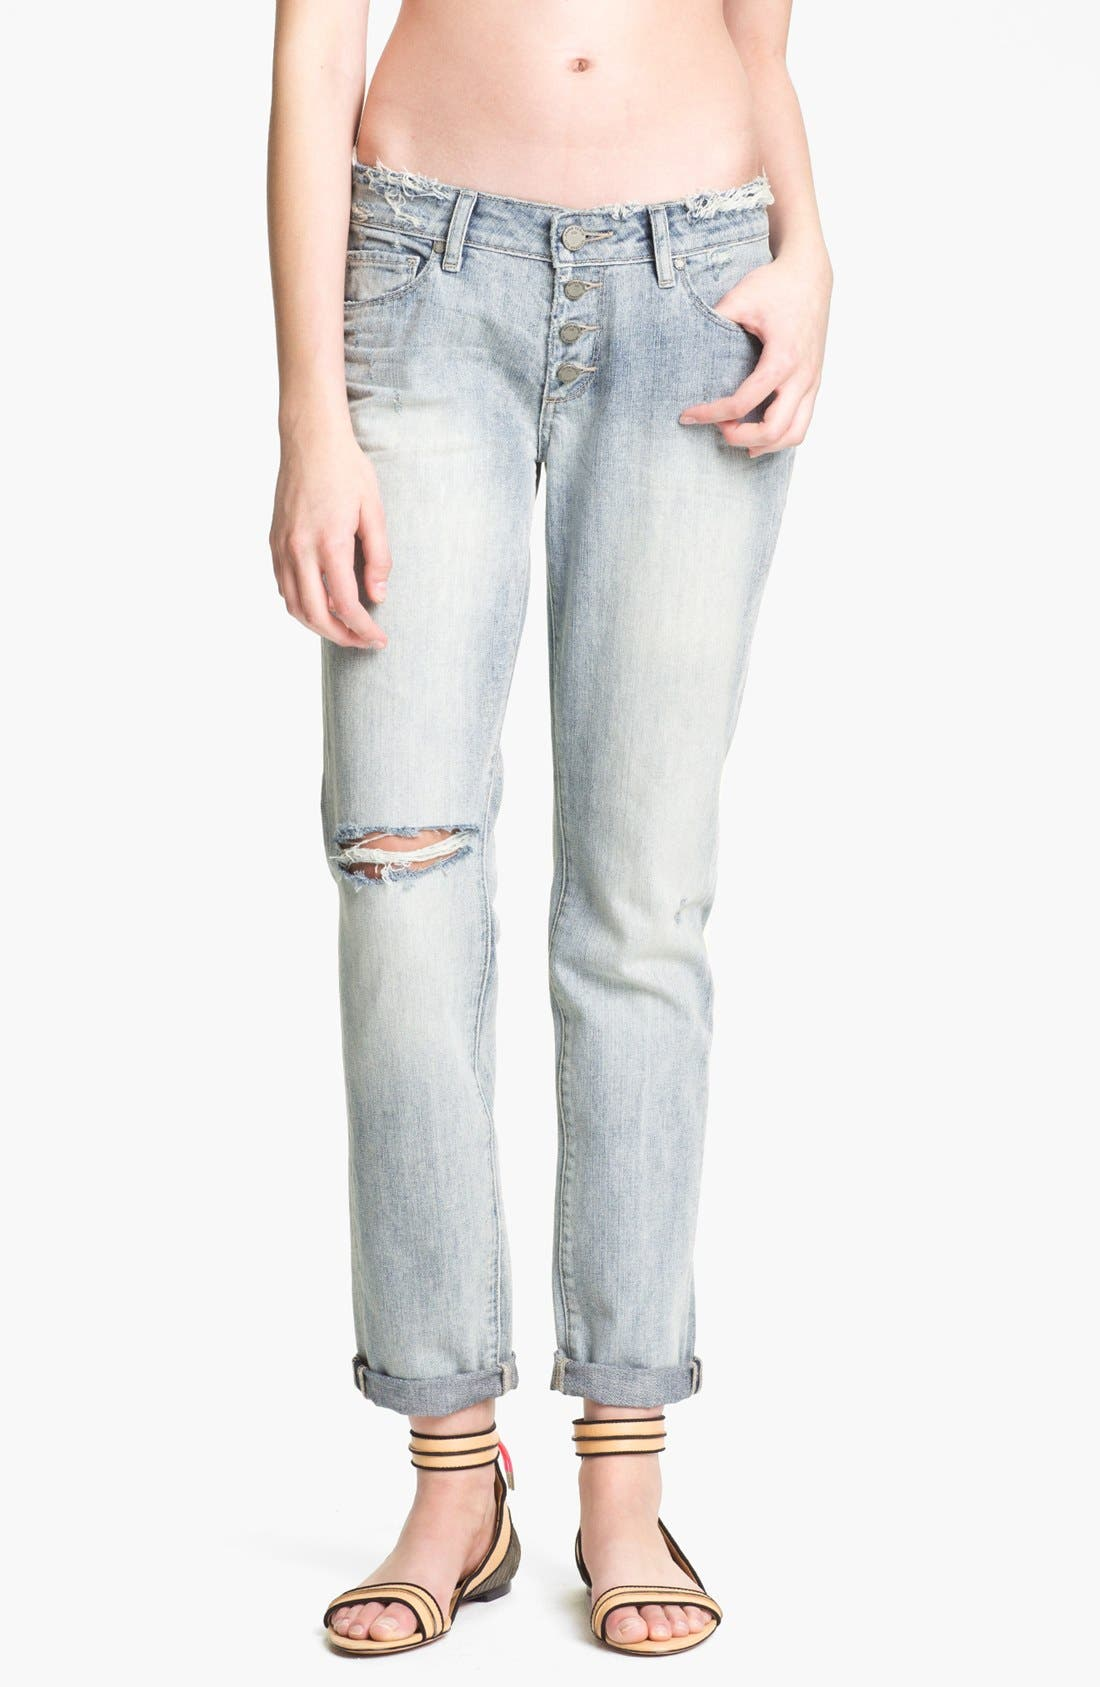 Alternate Image 1 Selected - Paige Denim 'Jimmy Jimmy' Destroyed Relaxed Fit Jeans (Pilot)